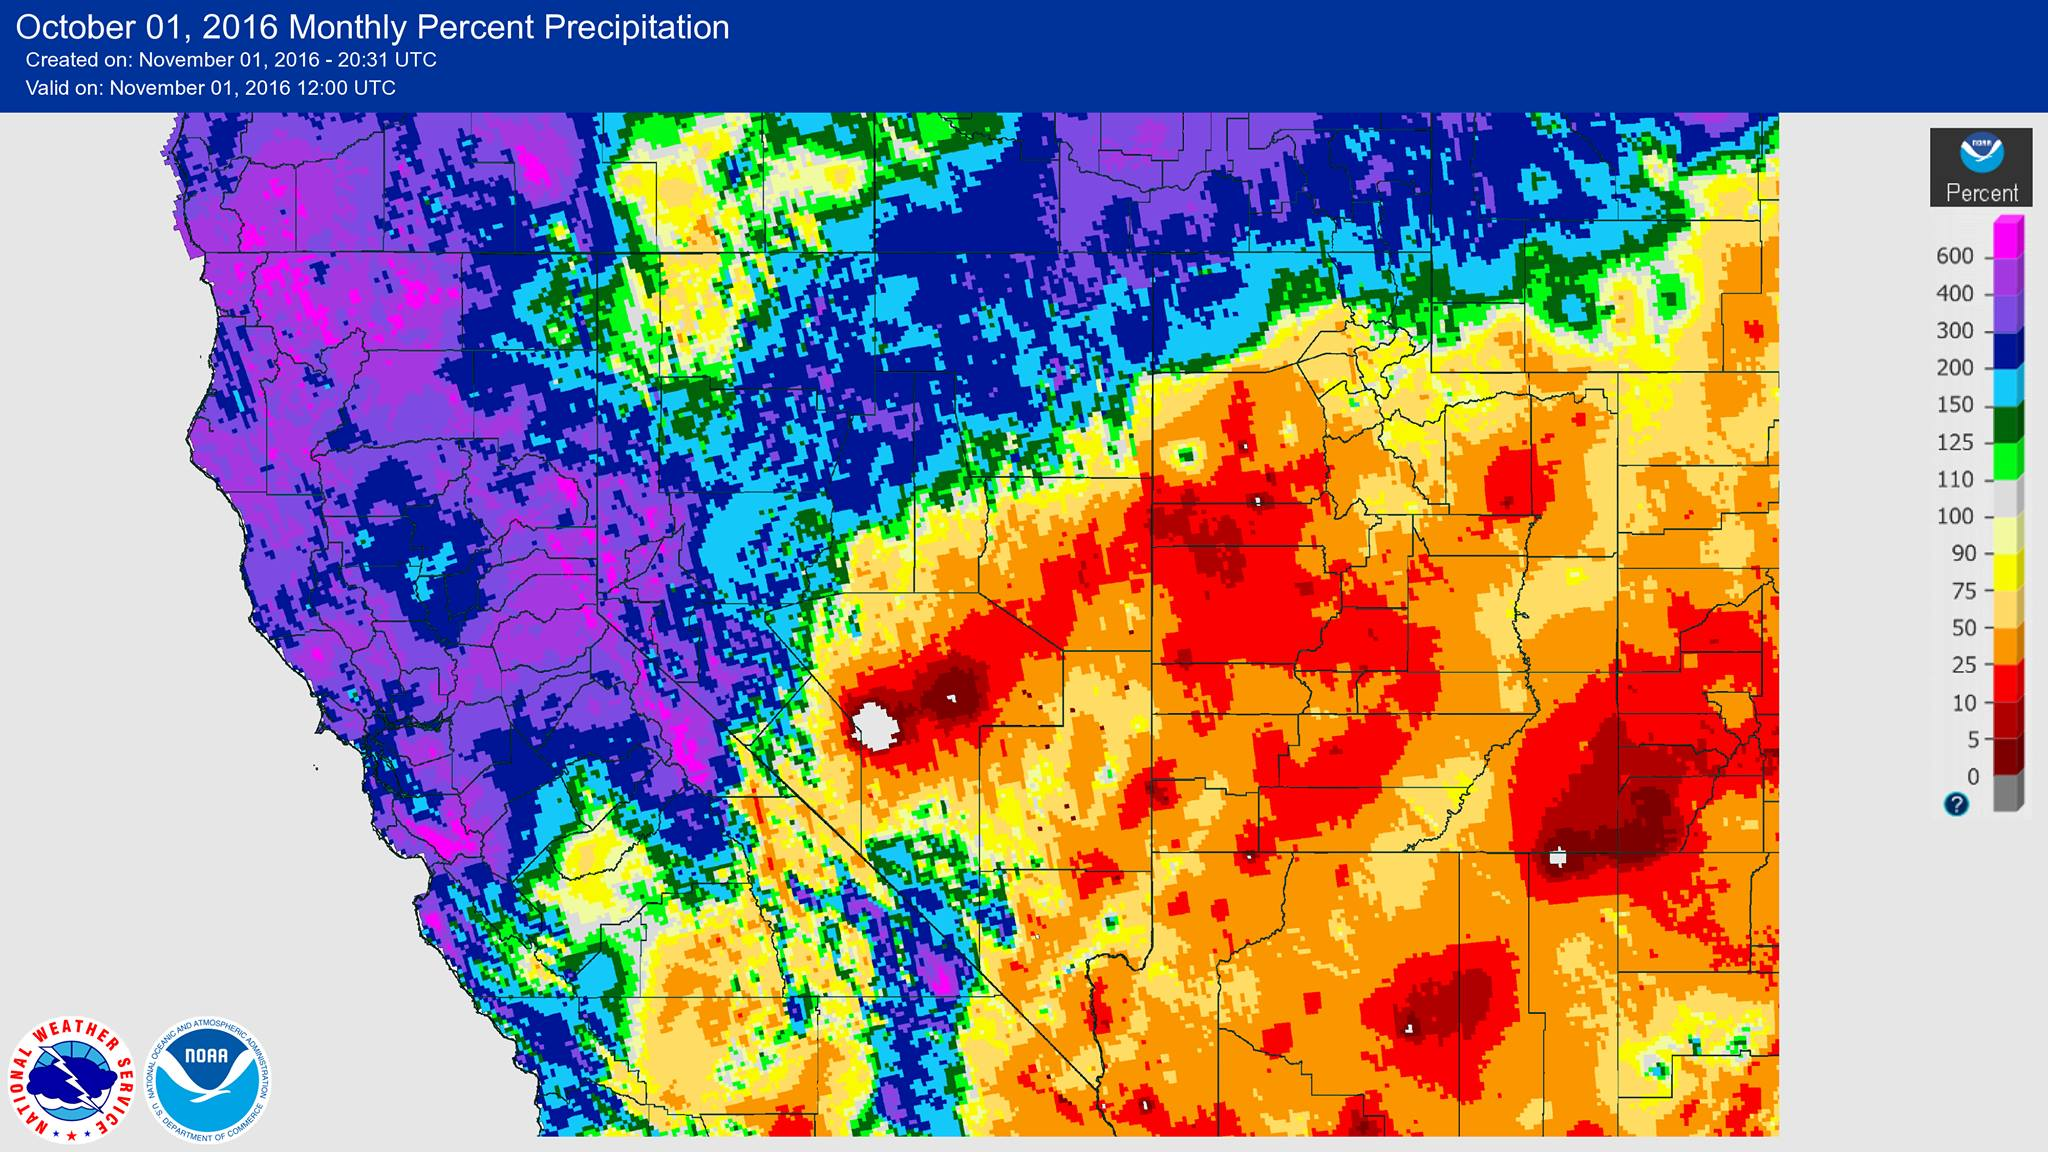 Percentage of average precipitation for the month of October in California. Many places reporting as high as 600% of average... image: noaa, yesterday